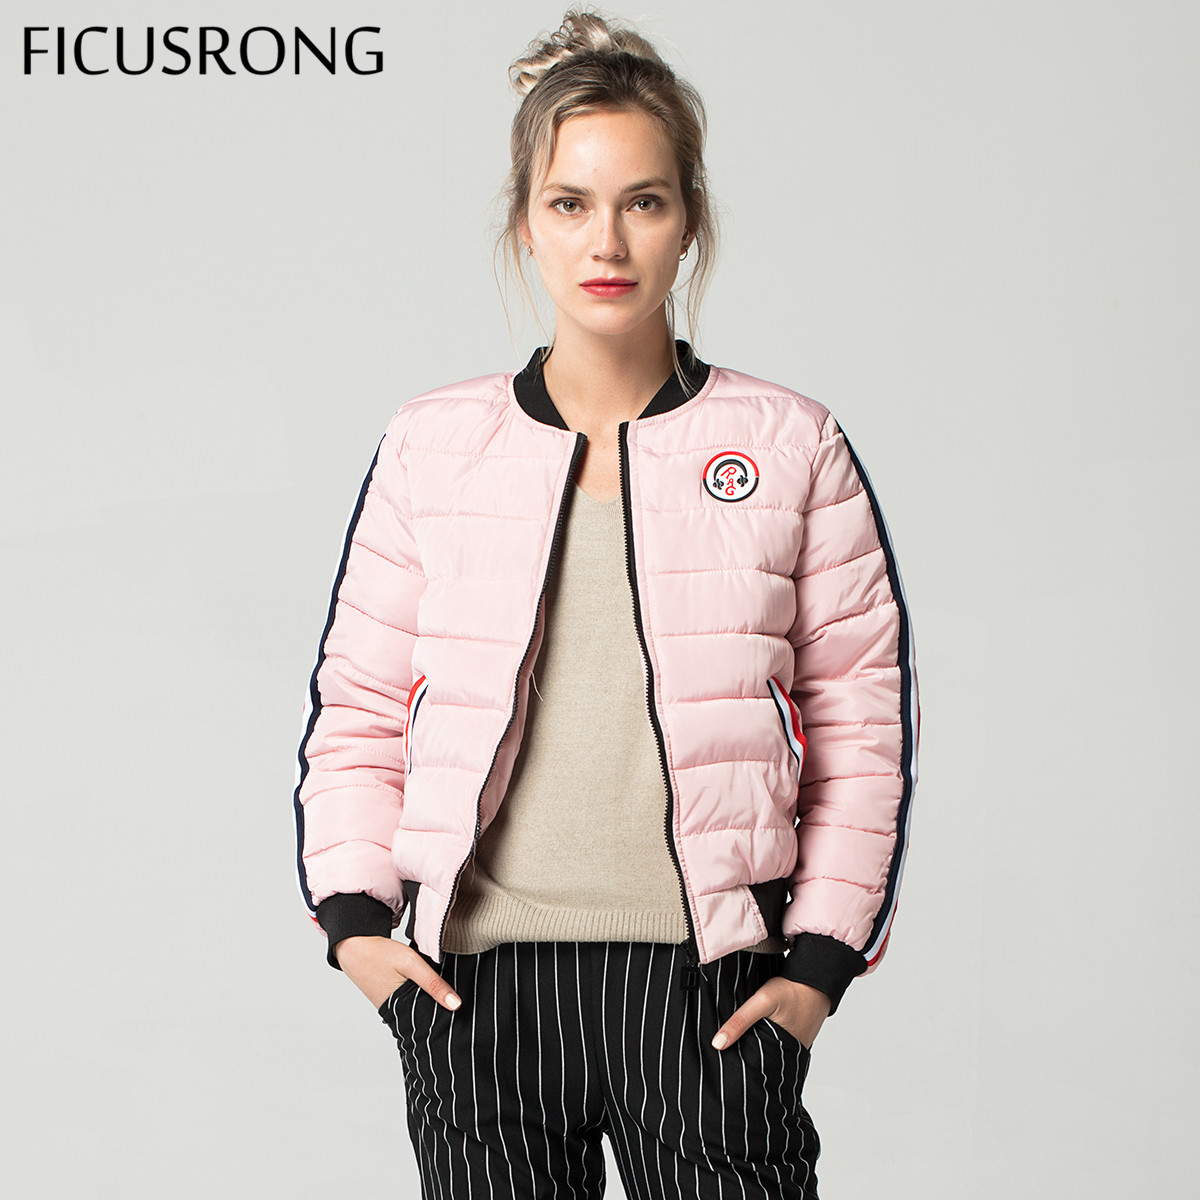 Fashion Warm Winter Jacket Women 5 Colors 2018 New Down   Parkas   Cotton Padded Jacket Girls Slim Thick Short Female Jacket Coat